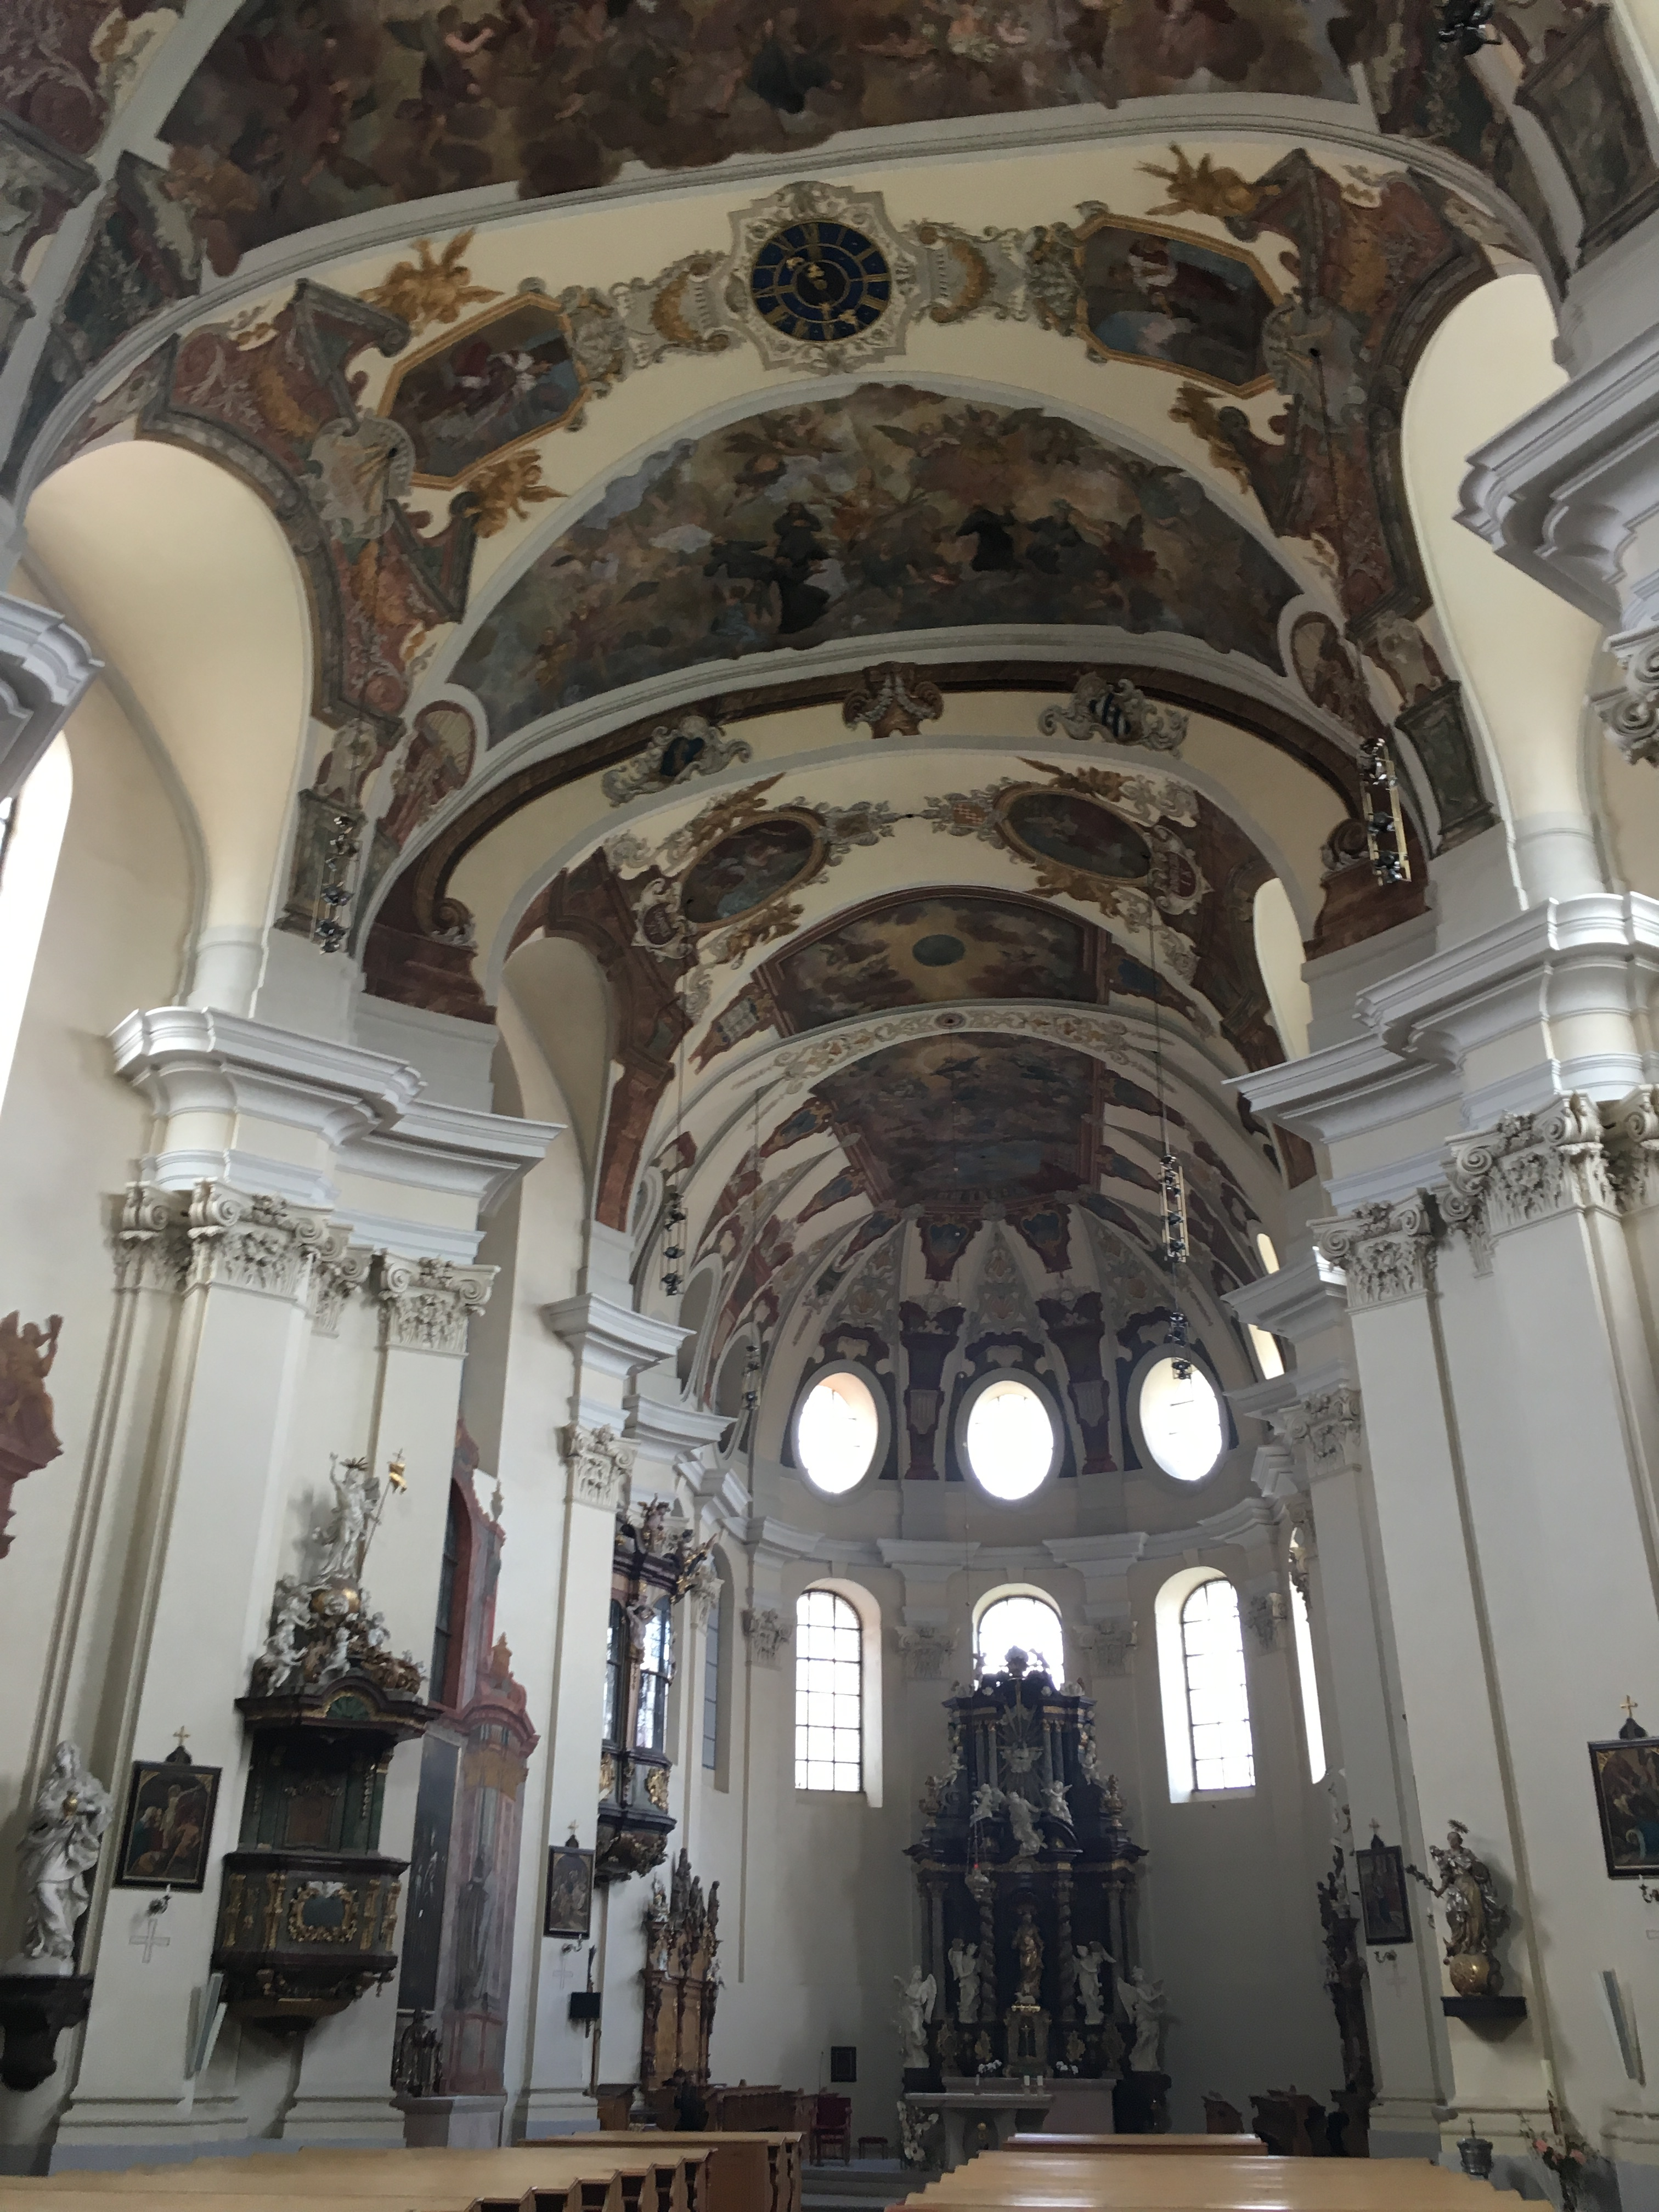 inside of the church with vaulted painted ceiling